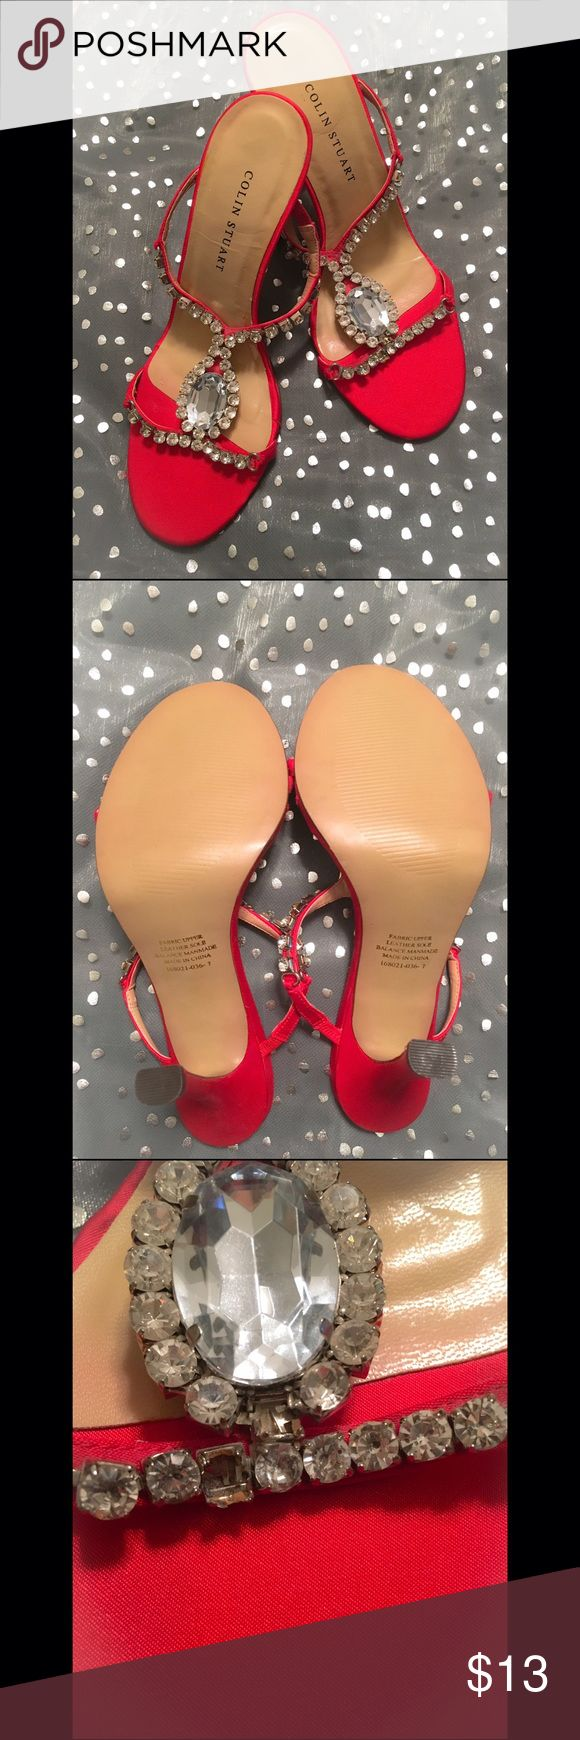 👠Colin Stuart Blinged Out Holiday Heels👠 Gorgeous red satin heels that have only been worn once for a short period of time. They have a 3 1/2 inch heel with no damage to the heel. The only defect is they are missing two stones on the left heel (pictured). With the sparkle they have and their silver setting you would only notice it if you were up close. Price is firm and sorry but no trades. Victoria's Secret Shoes Heels